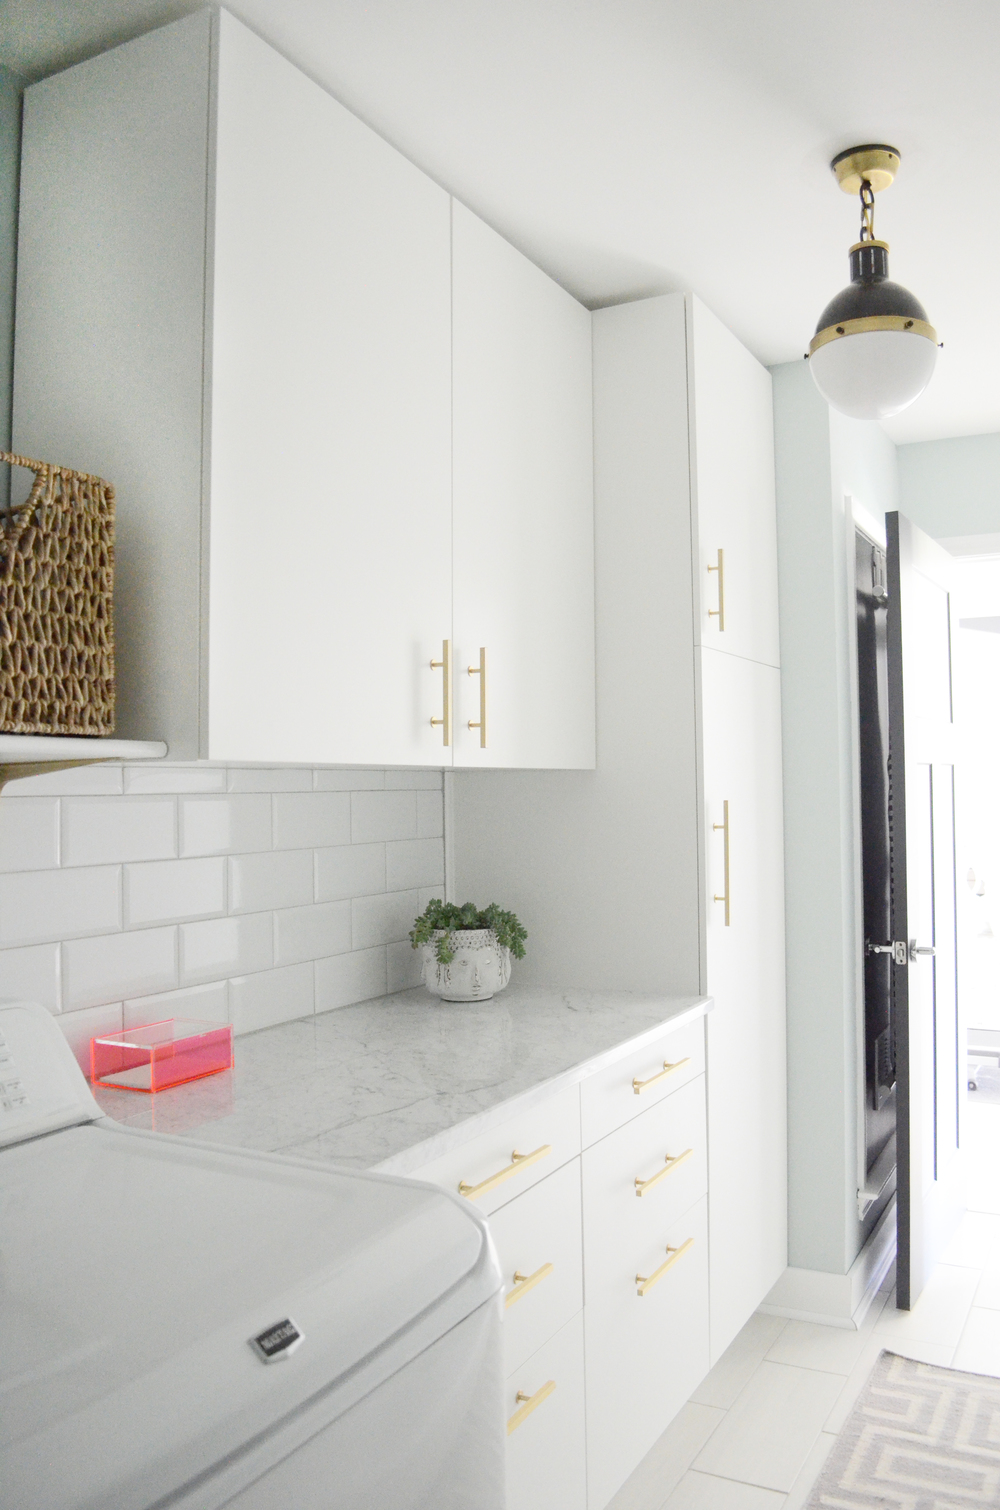 Carrara marble with beveled subway tile and Hick's pendant